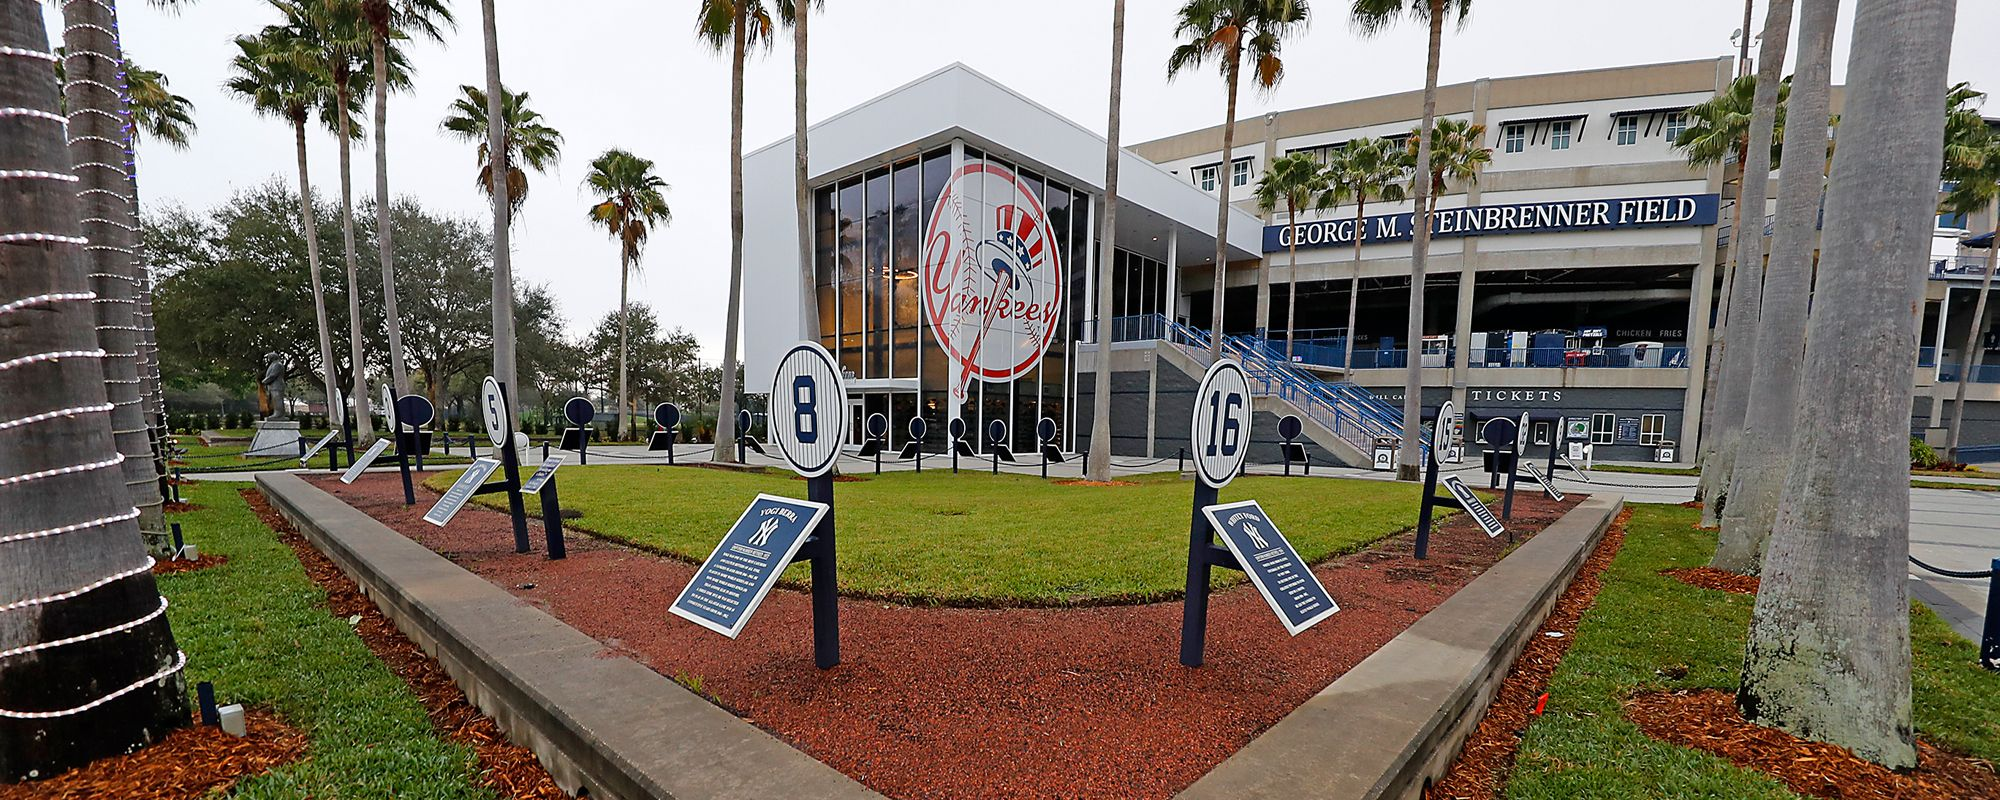 George M. Steinbrenner Field (Yankees)